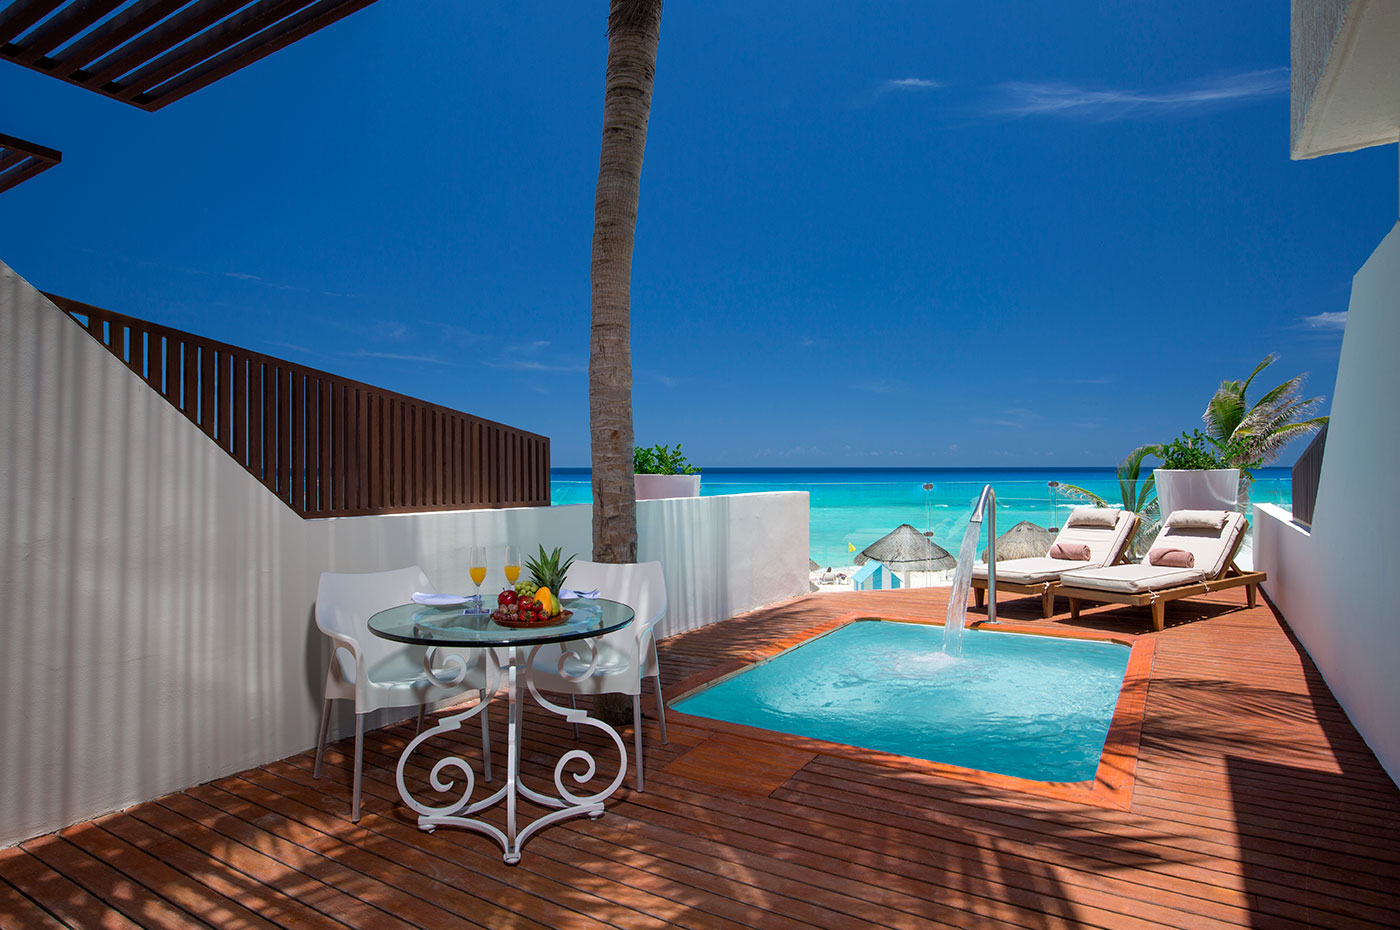 Master Suite terrace with private pool at The Sian Ka'an at Grand Sens hotel